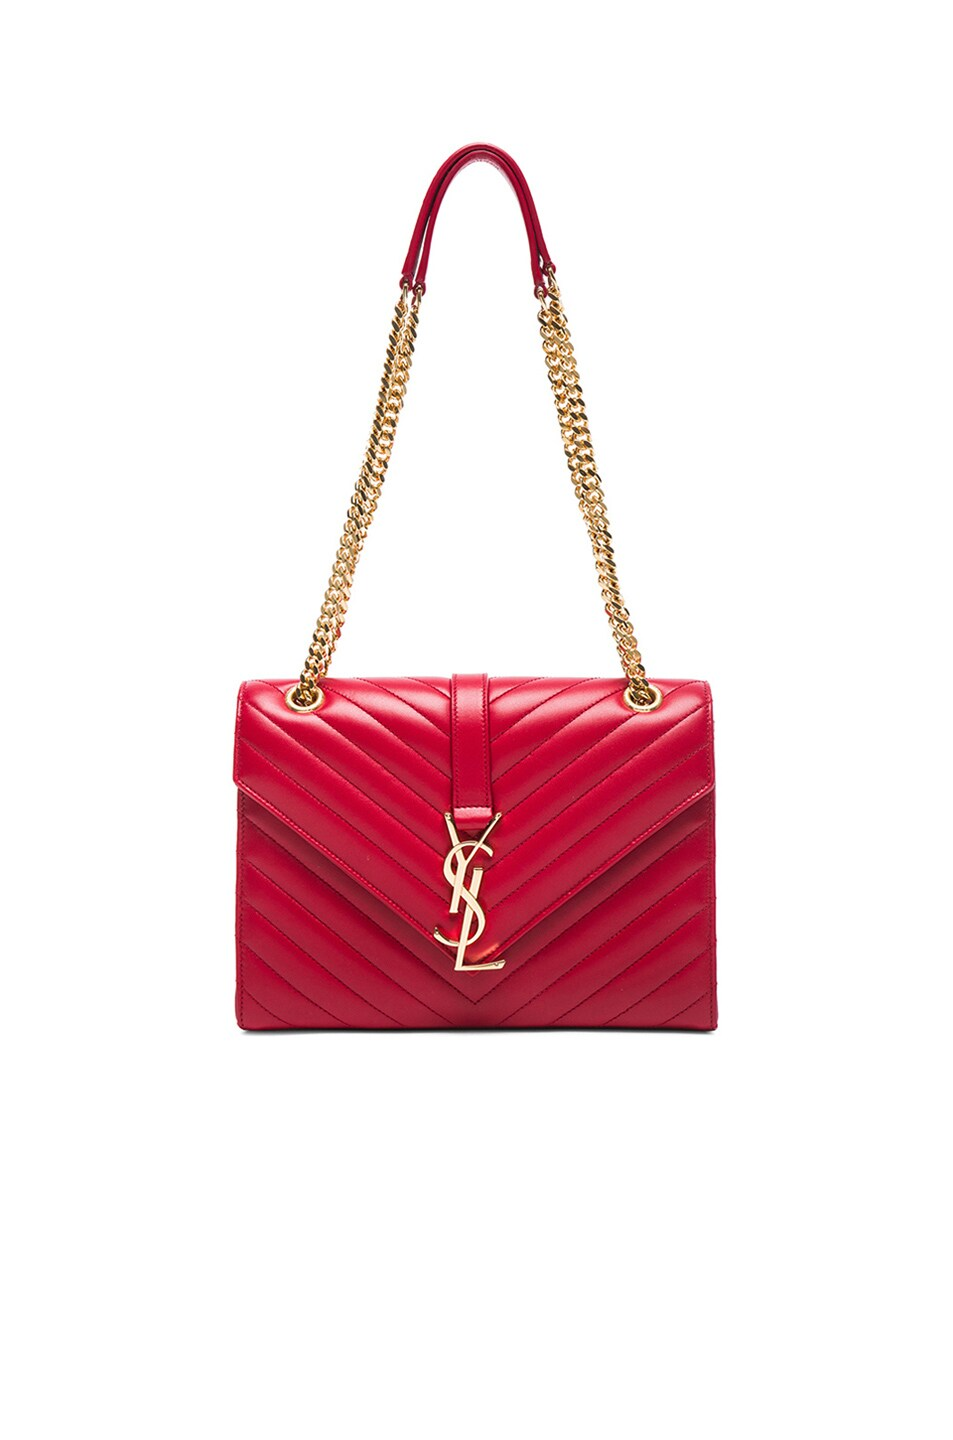 cca3e4b59c9 Image 1 of Saint Laurent Medium Monogram Envelope Chain Bag in Lipstick Red